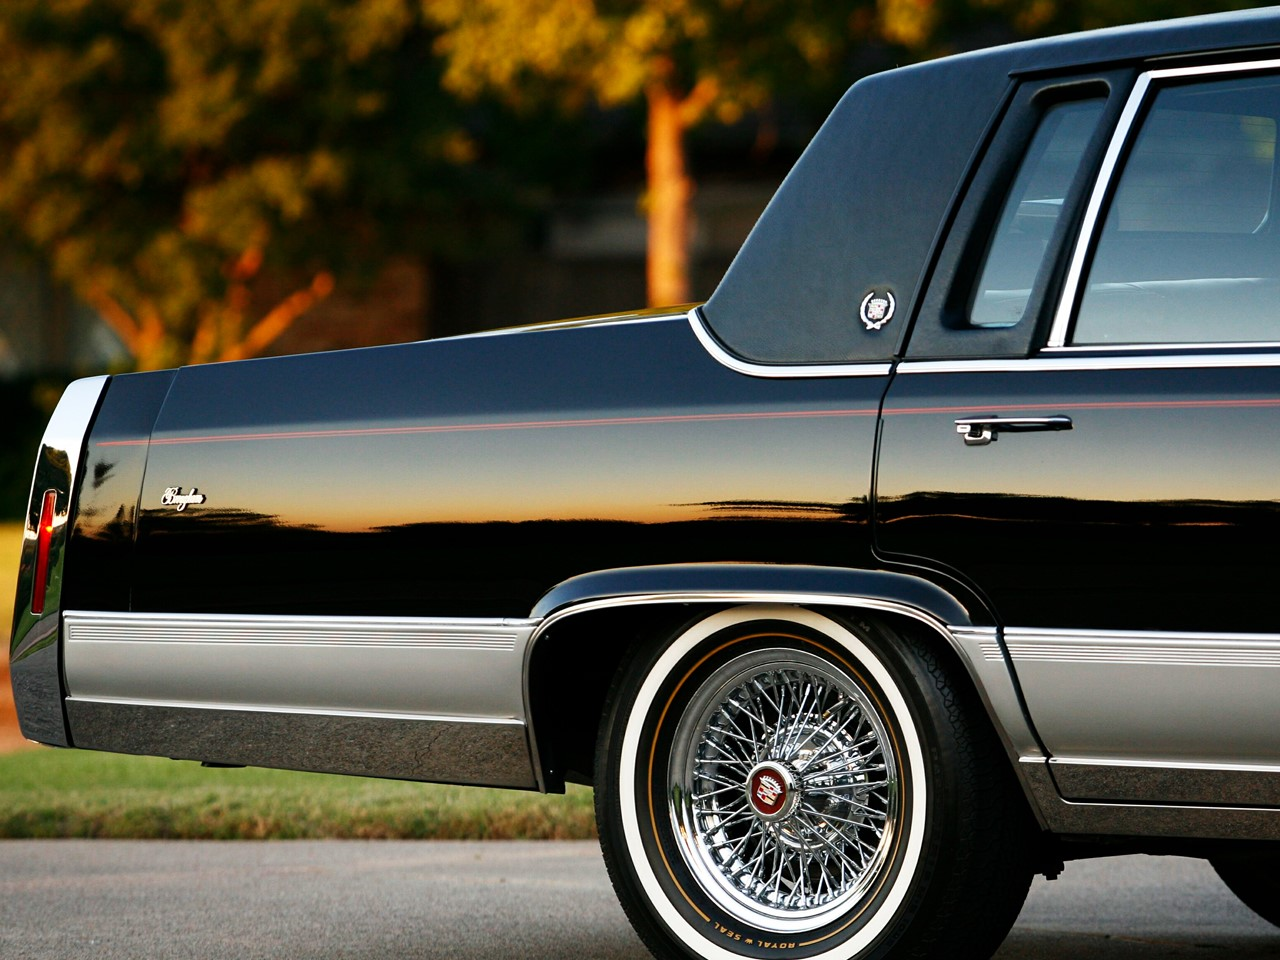 1990 Brougham black